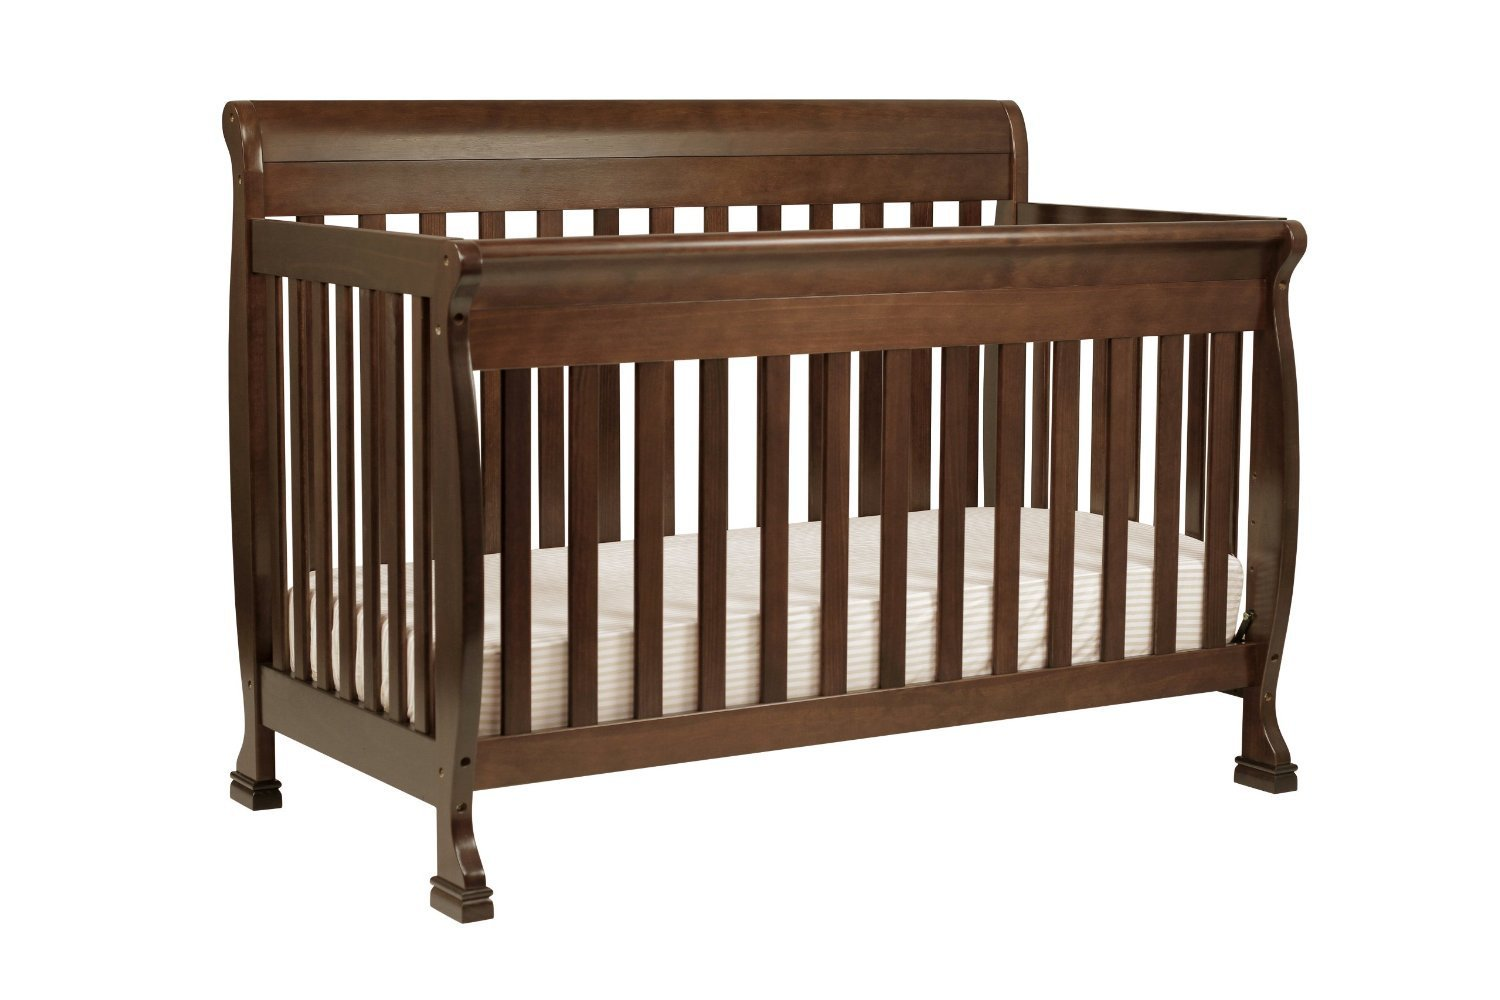 Premium Baby Crib Convertible Furniture Cribs 4 In 1 Davinci Toddler Cot  Modern Nursery Solid Wood